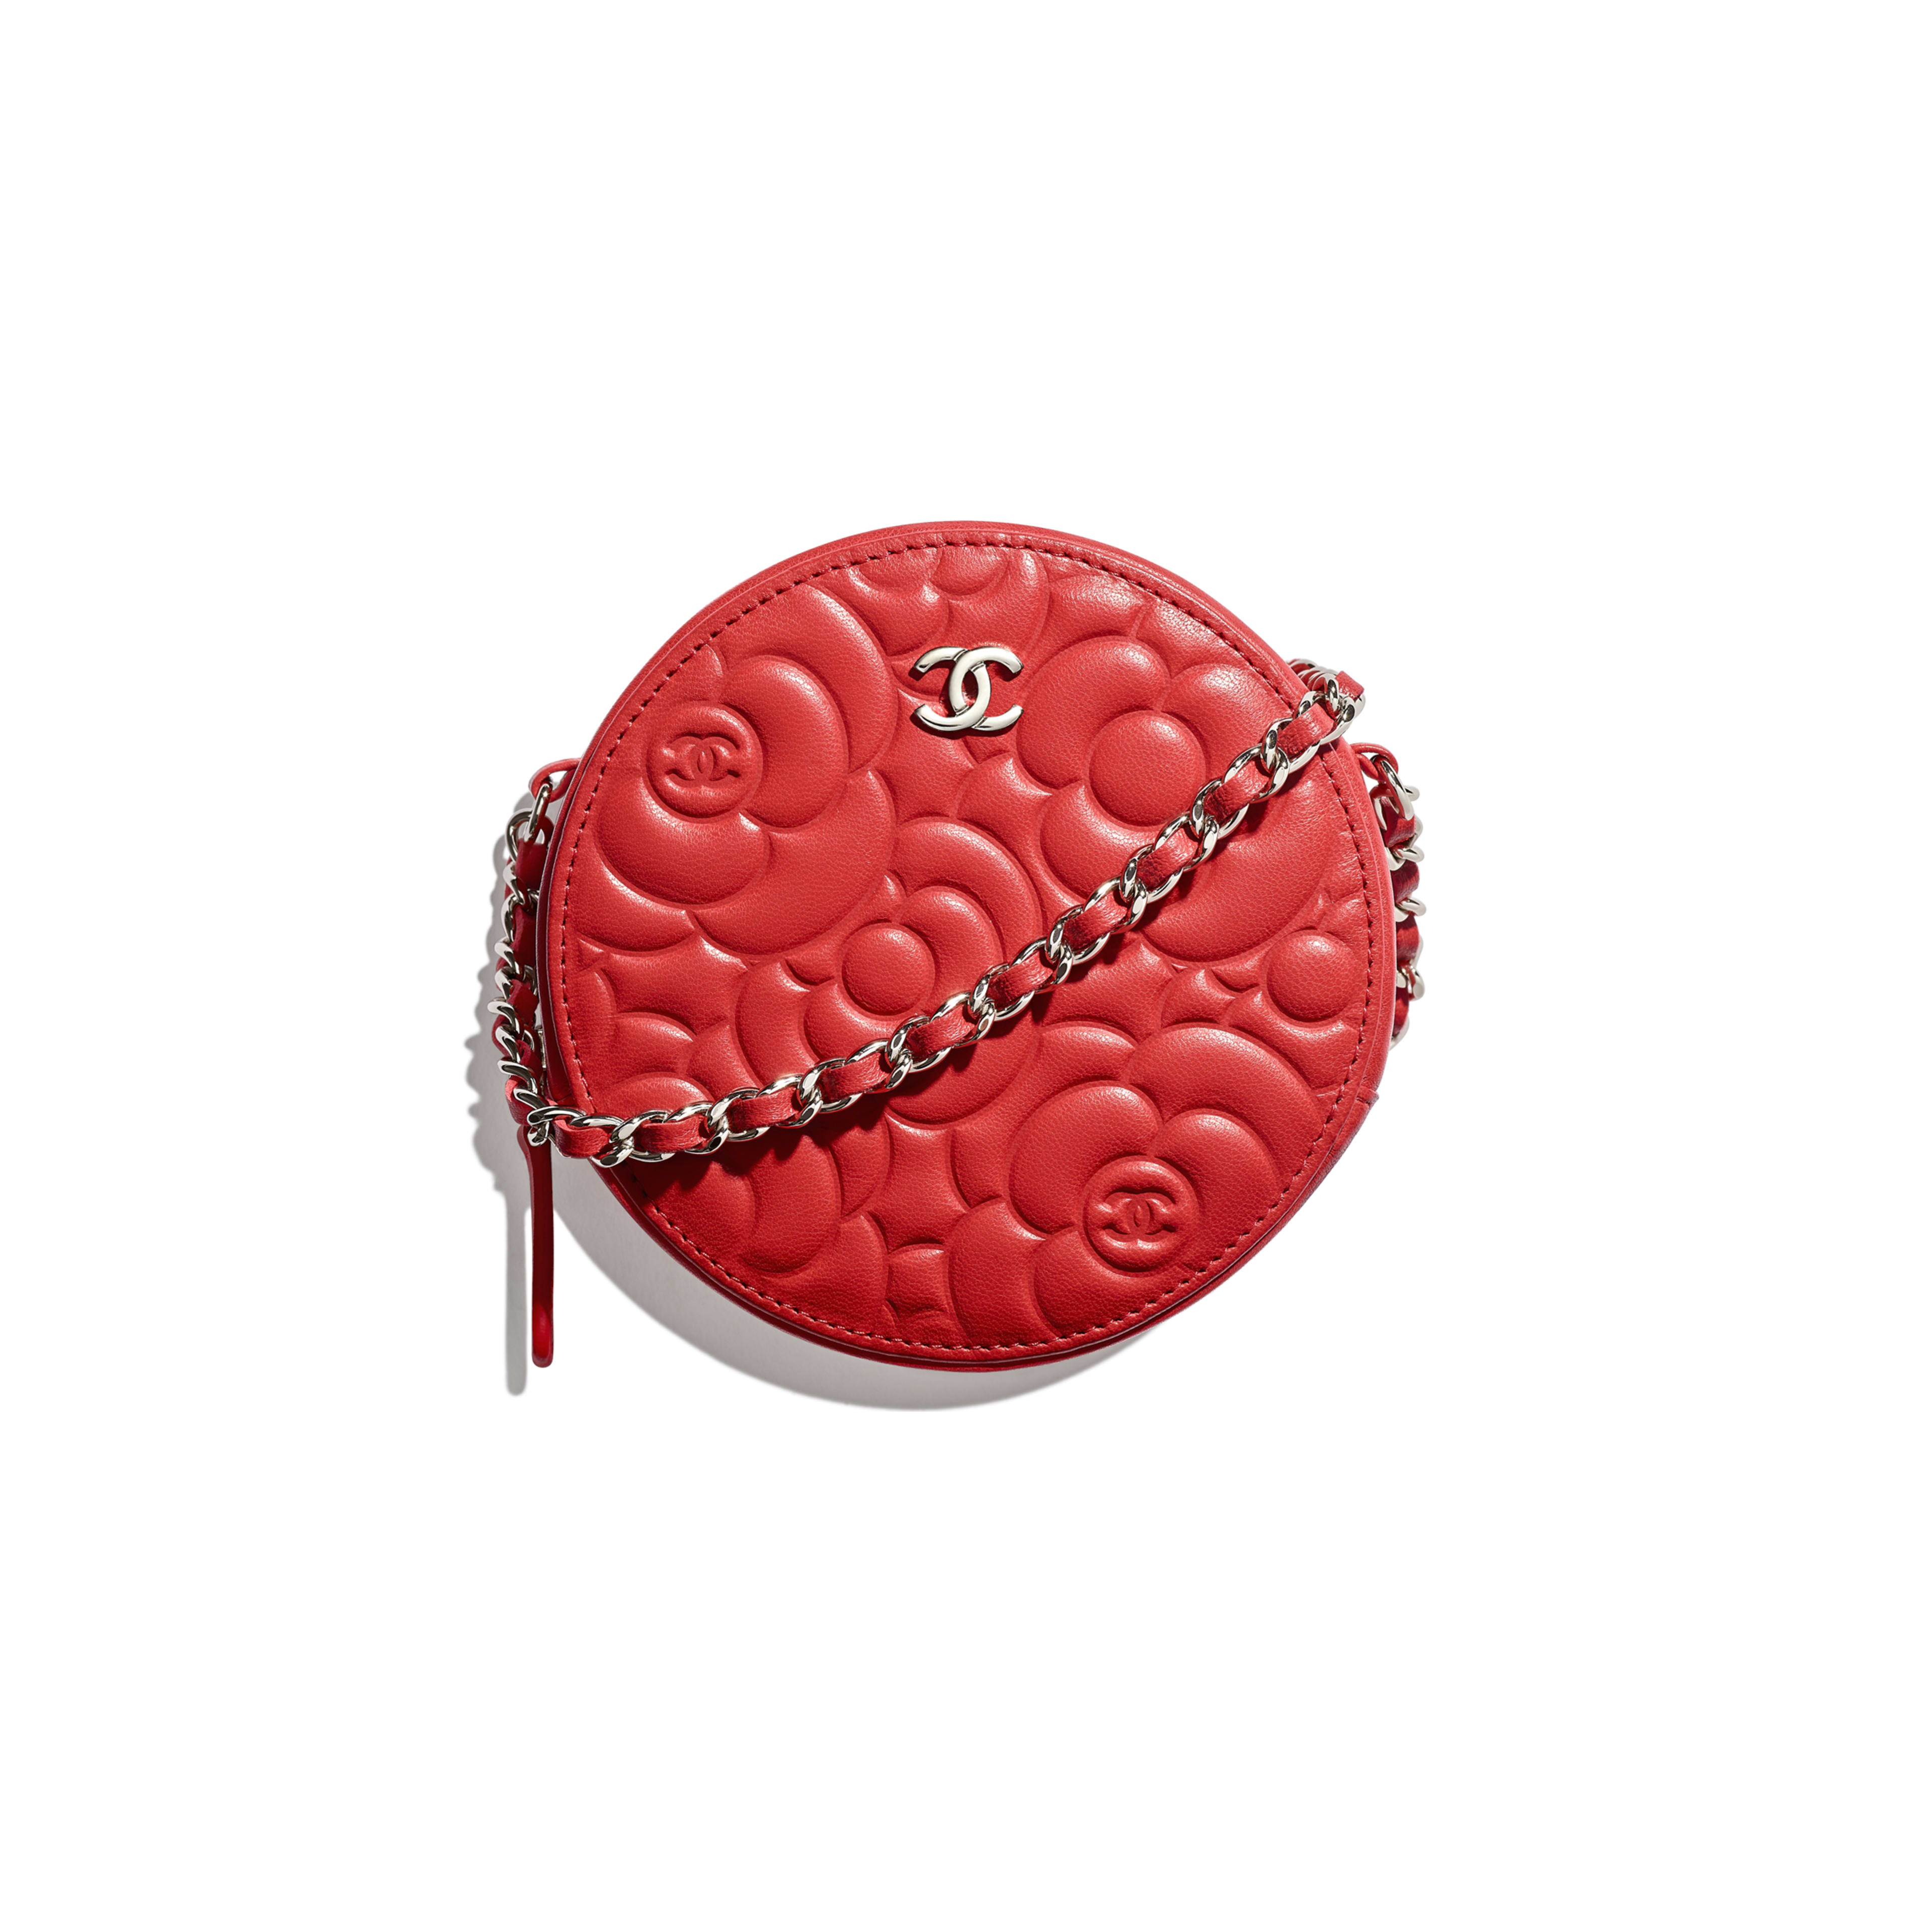 93970baecee6 Lambskin   Silver-Tone Metal Red Clutch with Chain